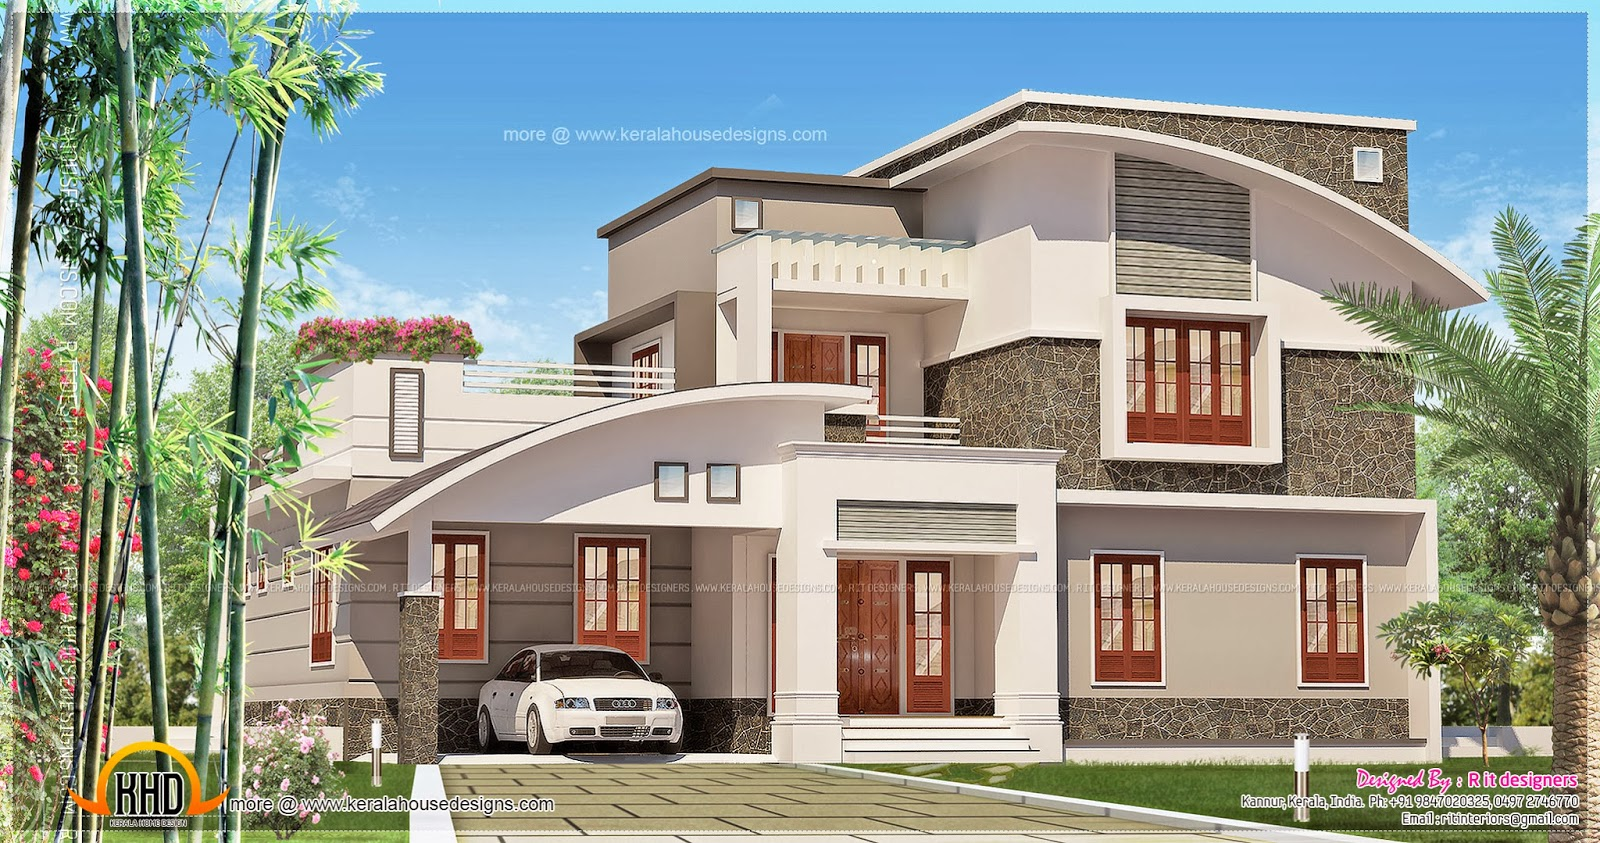 3 bedroom contemporary mix house exterior kerala home for Model house design 2016